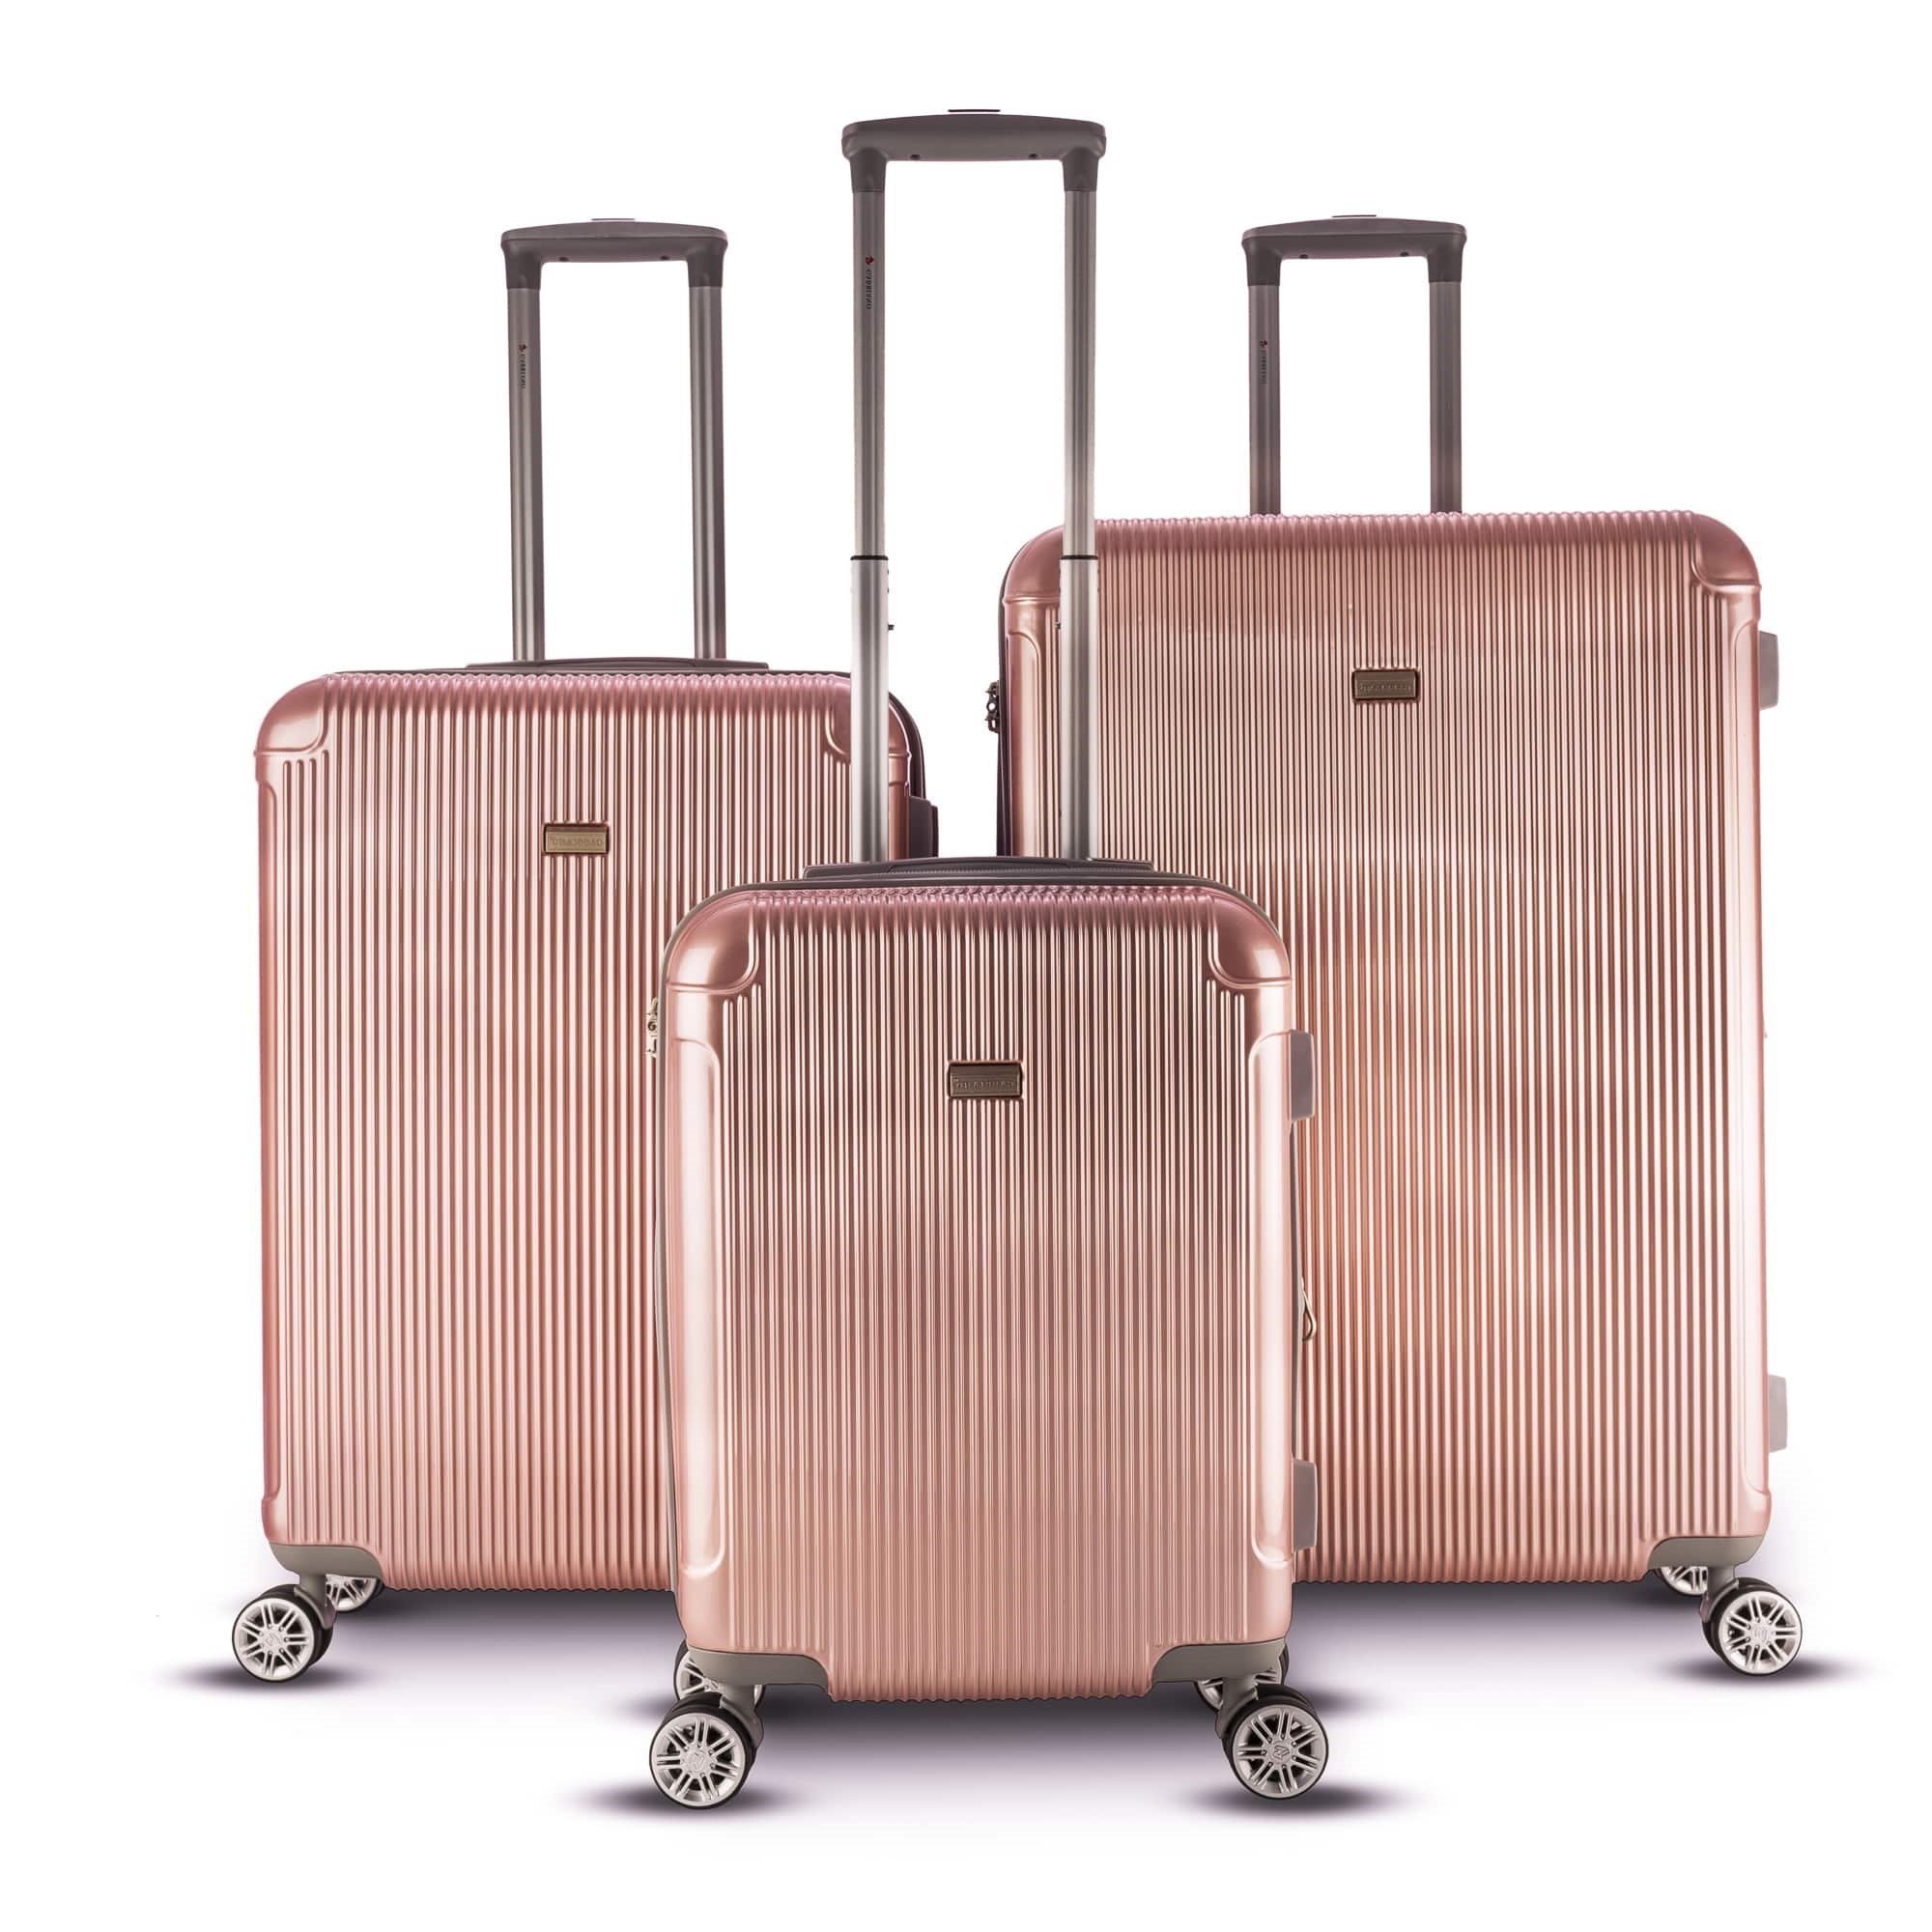 2533edfb4 Get Quotations · Solid Geometric Stripes Motif Spinner Lightweight  Expandable Carry On Luggage Set Suitcases, Vertical Lines Theme